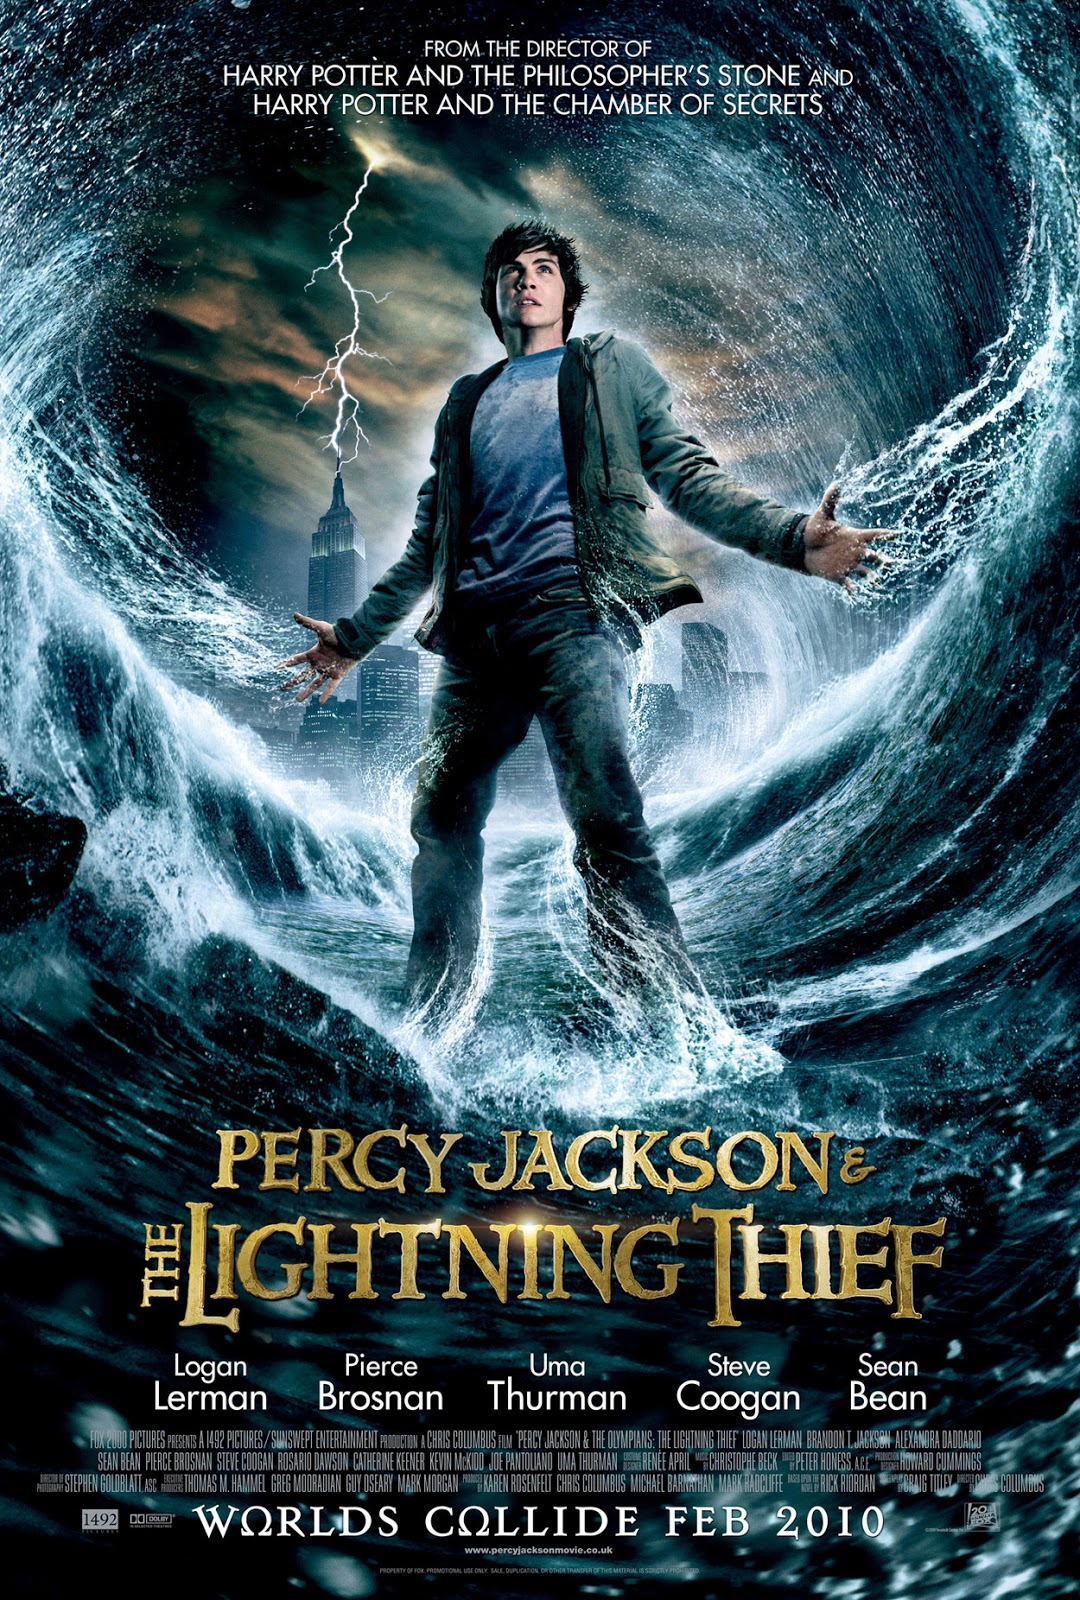 Percy Jackson Ebook For Mobile